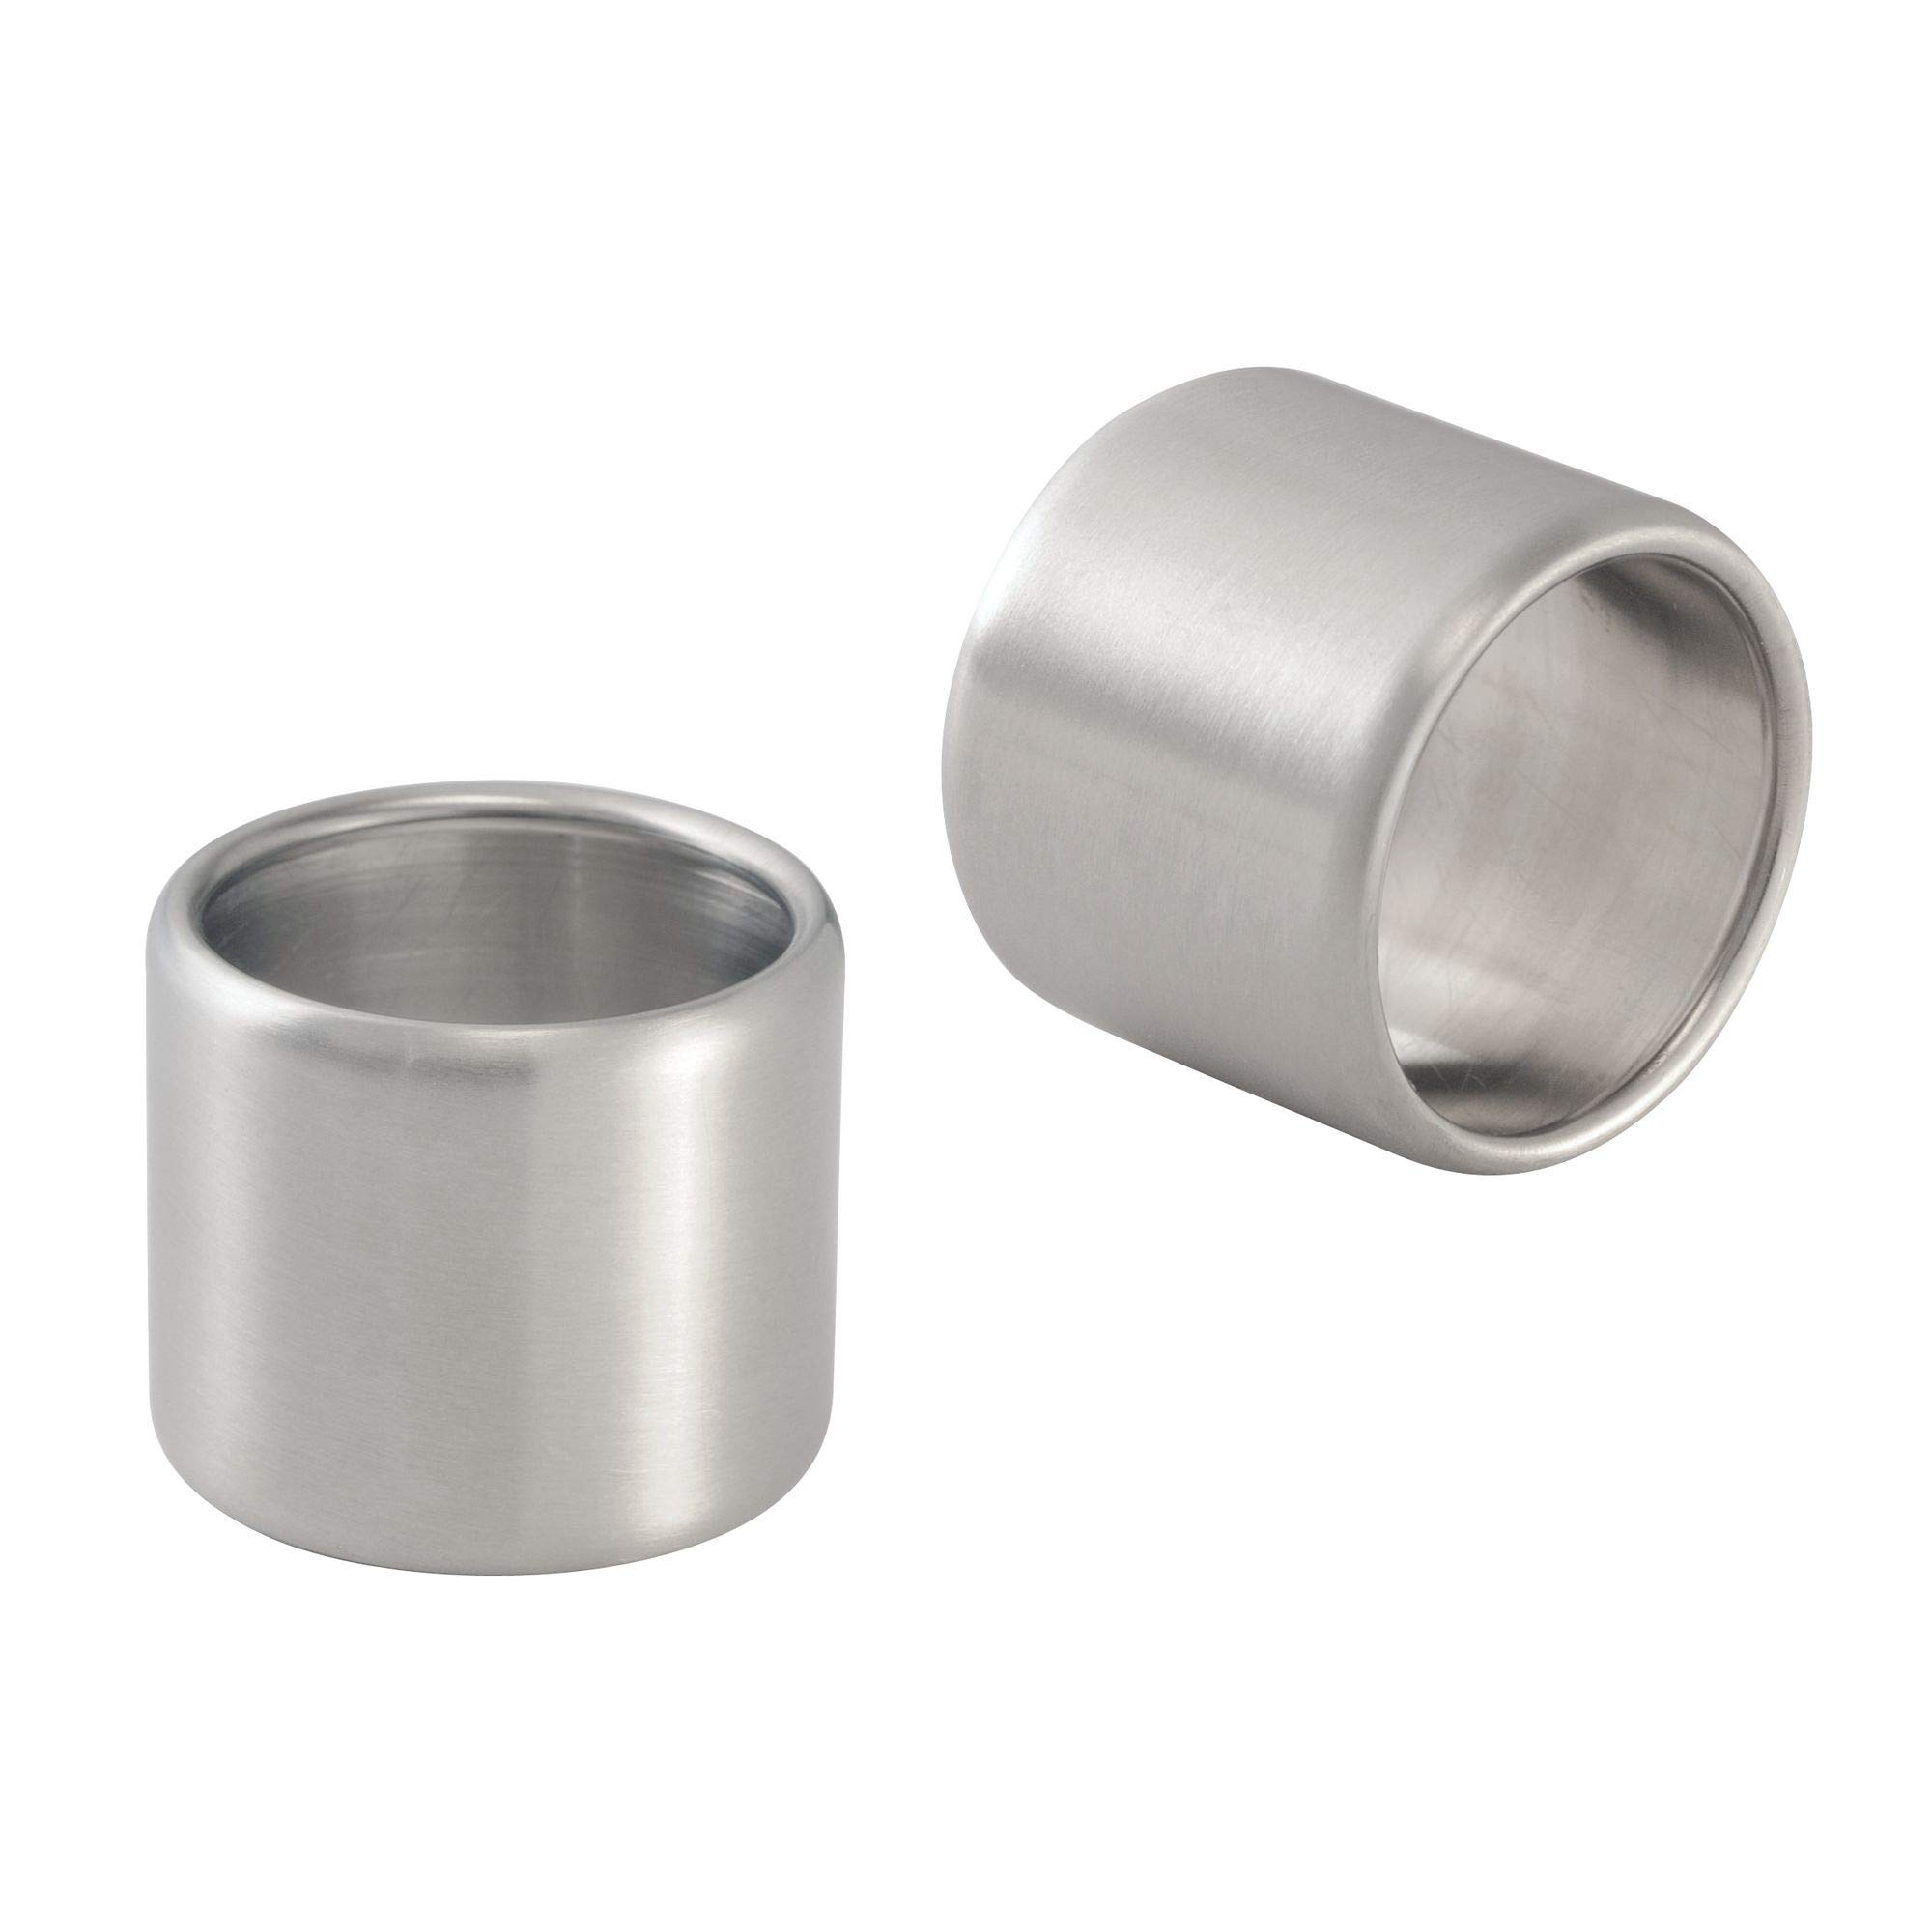 mDesign Napkin Rings for Home, Kitchen, Dining Room - Pack of 8, Brushed Stainless Steel by mDesign (Image #5)